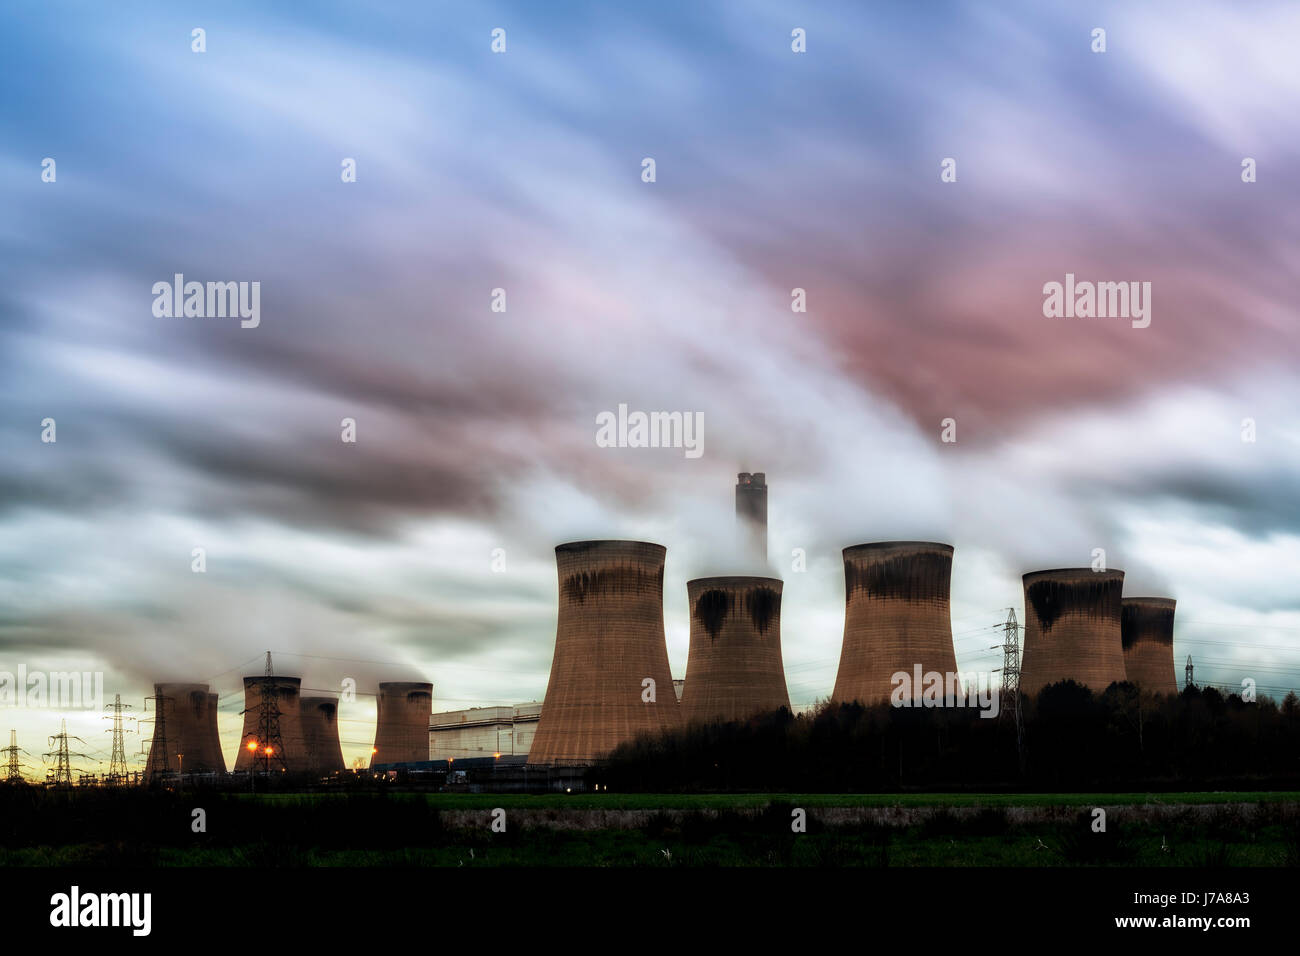 Drax is a large coal-fired power station in North Yorkshire, England, capable of co-firing biomass and petcoke, - Stock Image